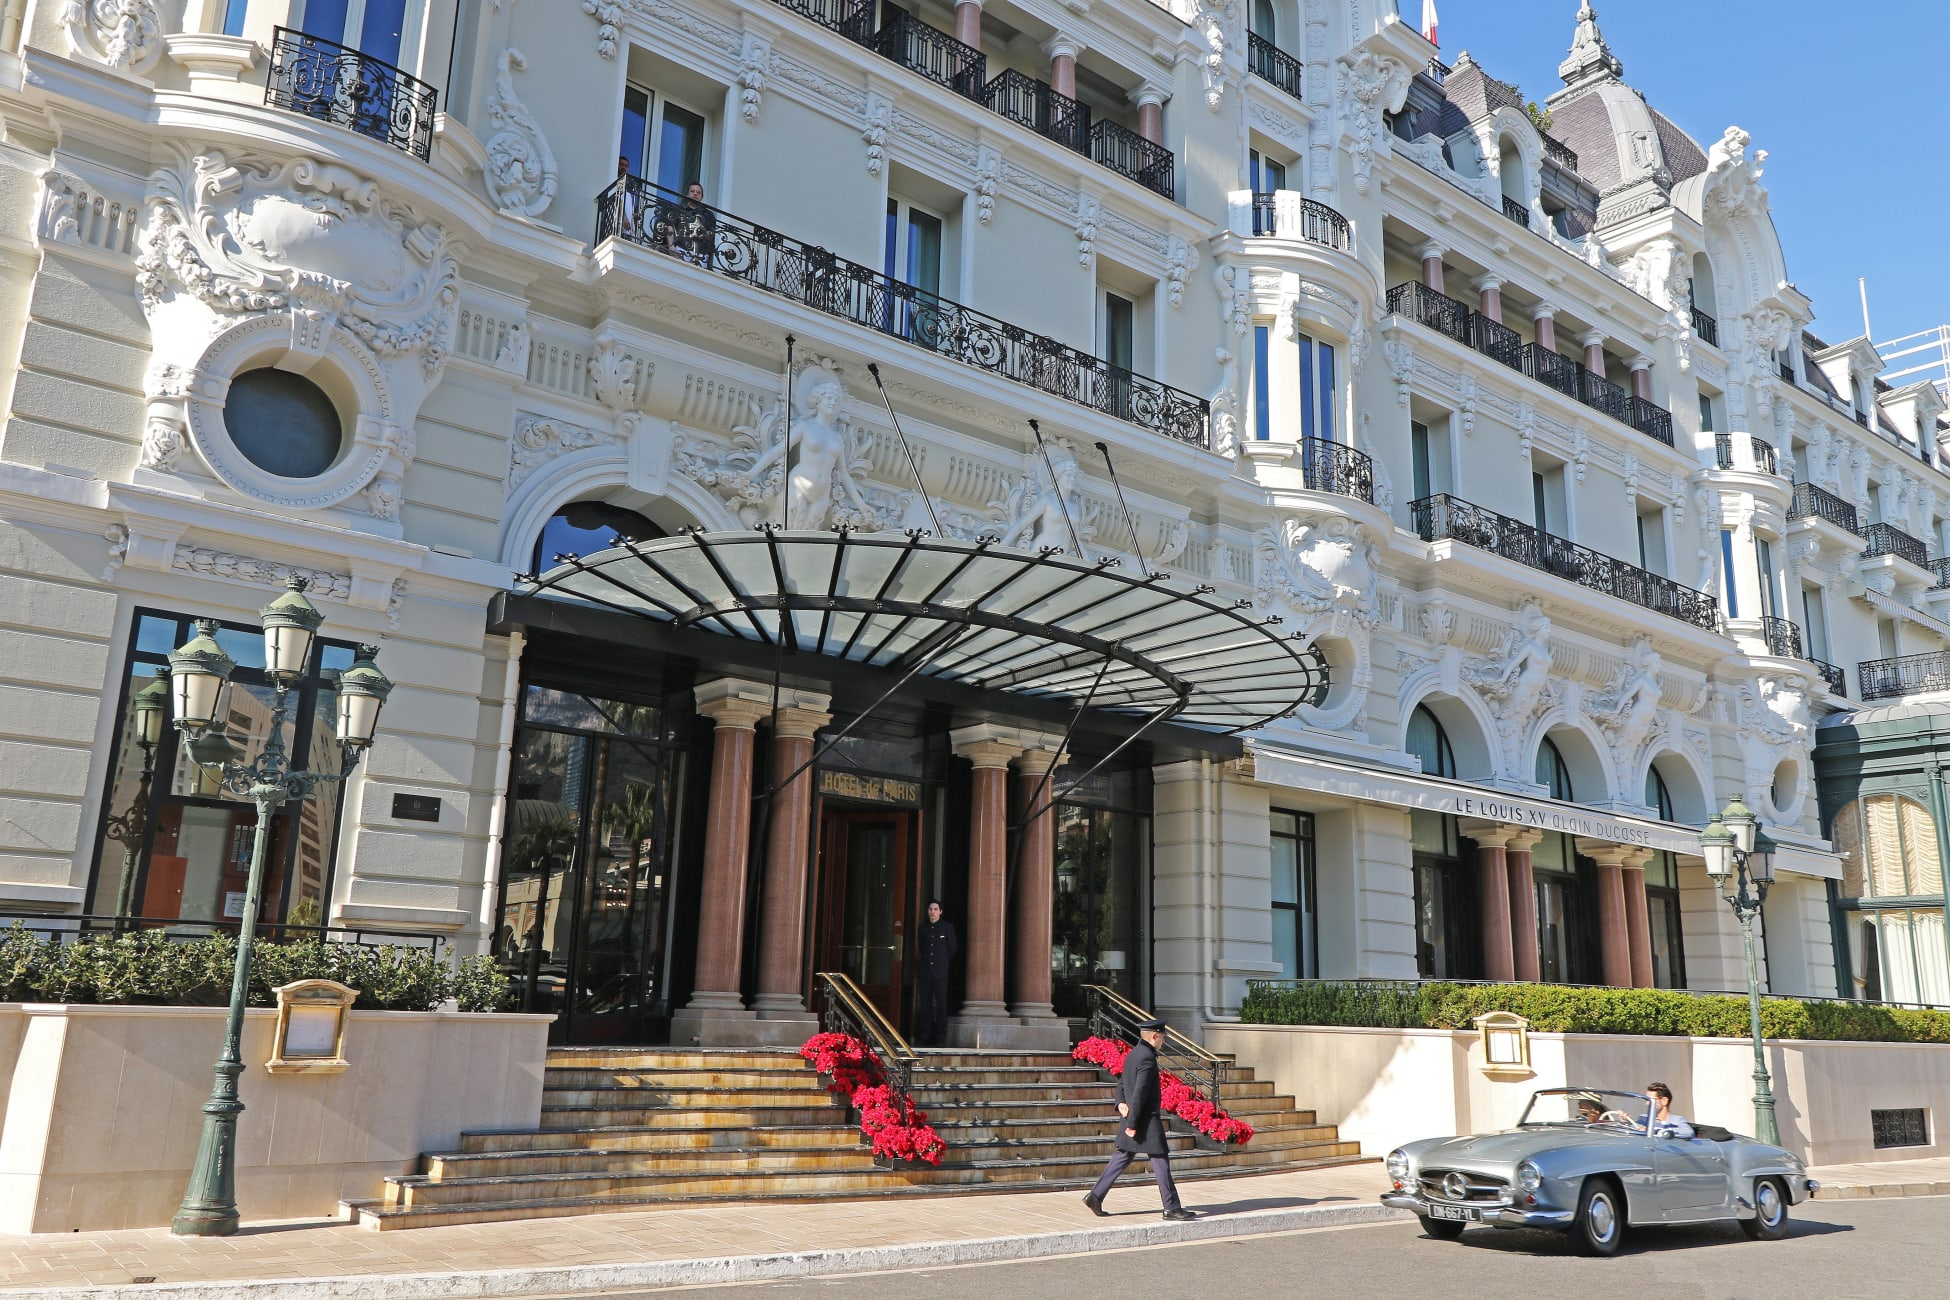 The entrance to the Hotel Paris Monte Carlo.